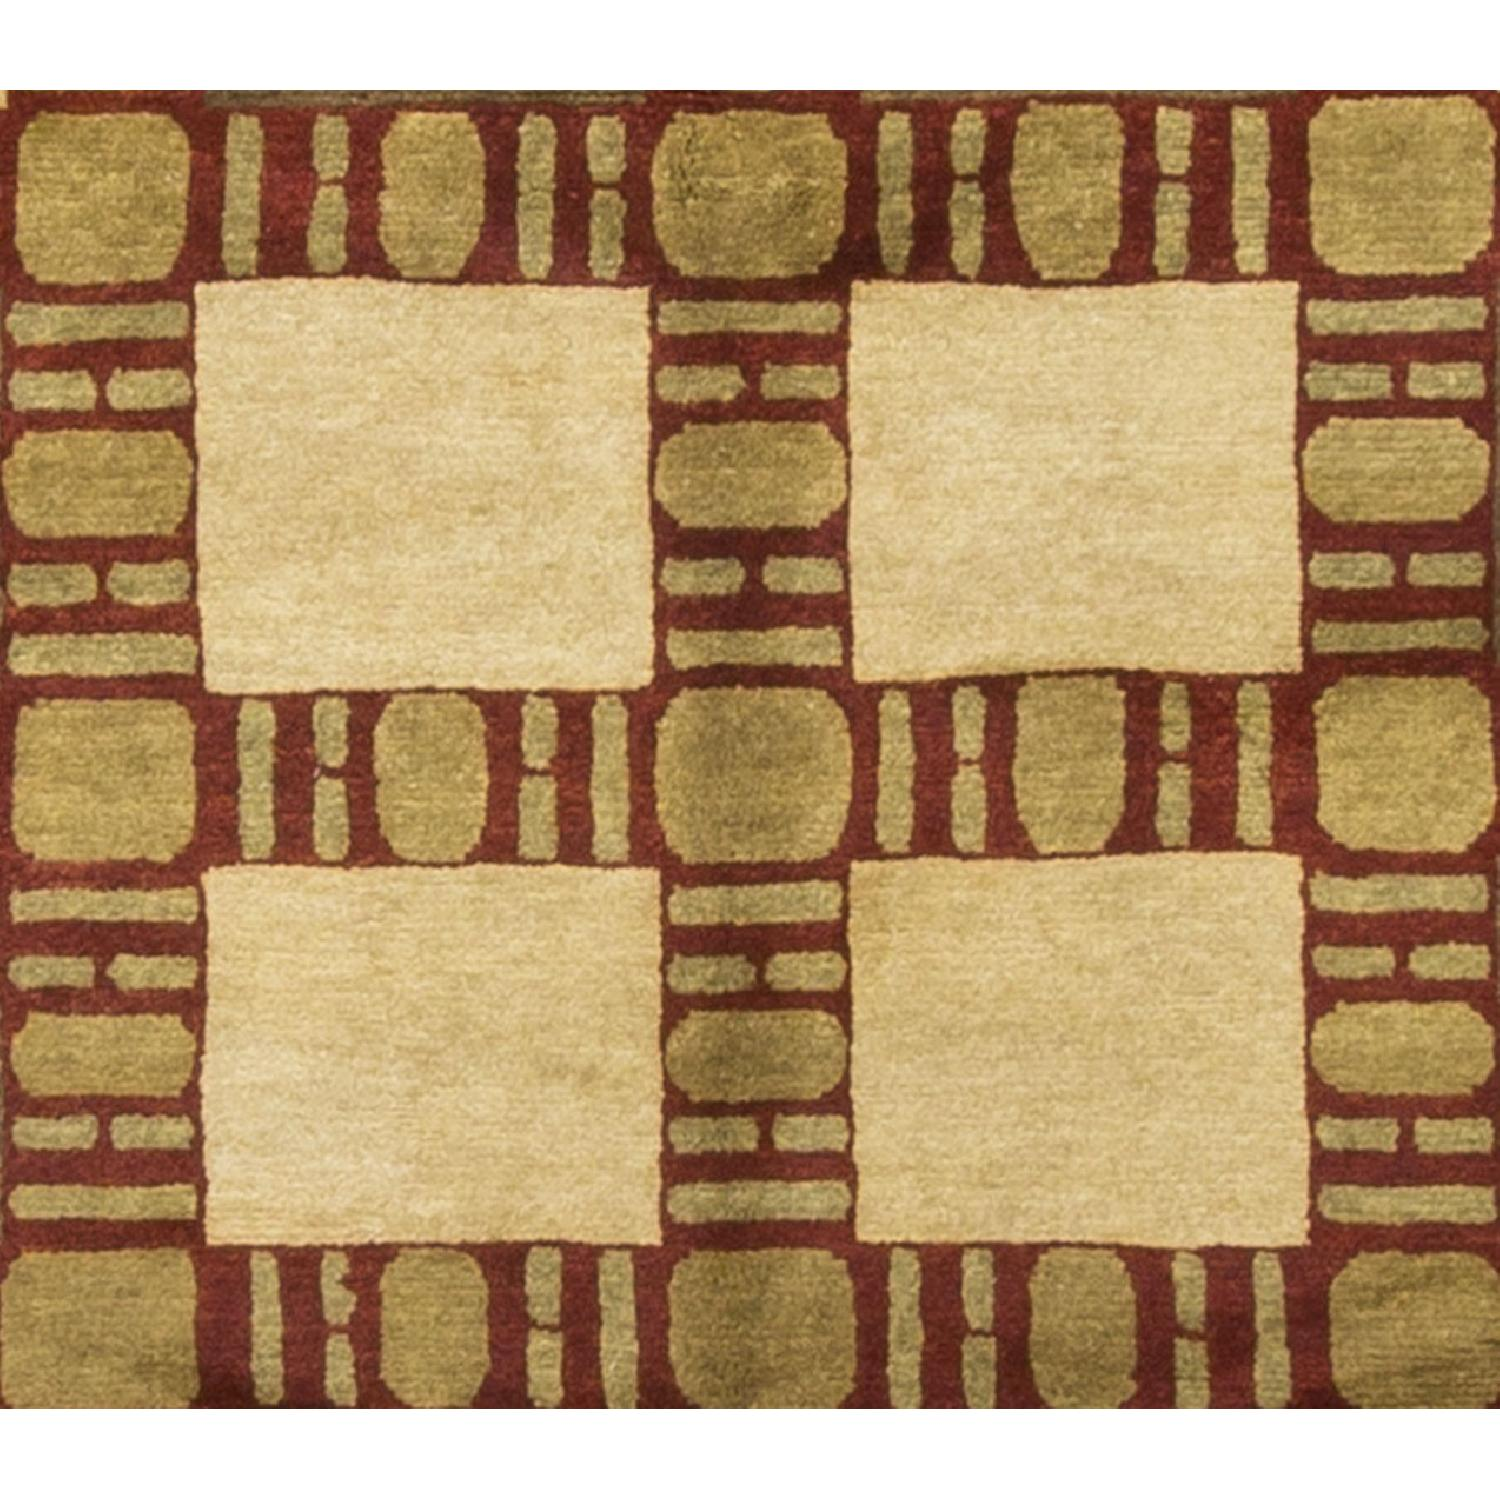 Modern Contemporary Hand Knotted Wool Rug in Beige/Red/Gold - image-2